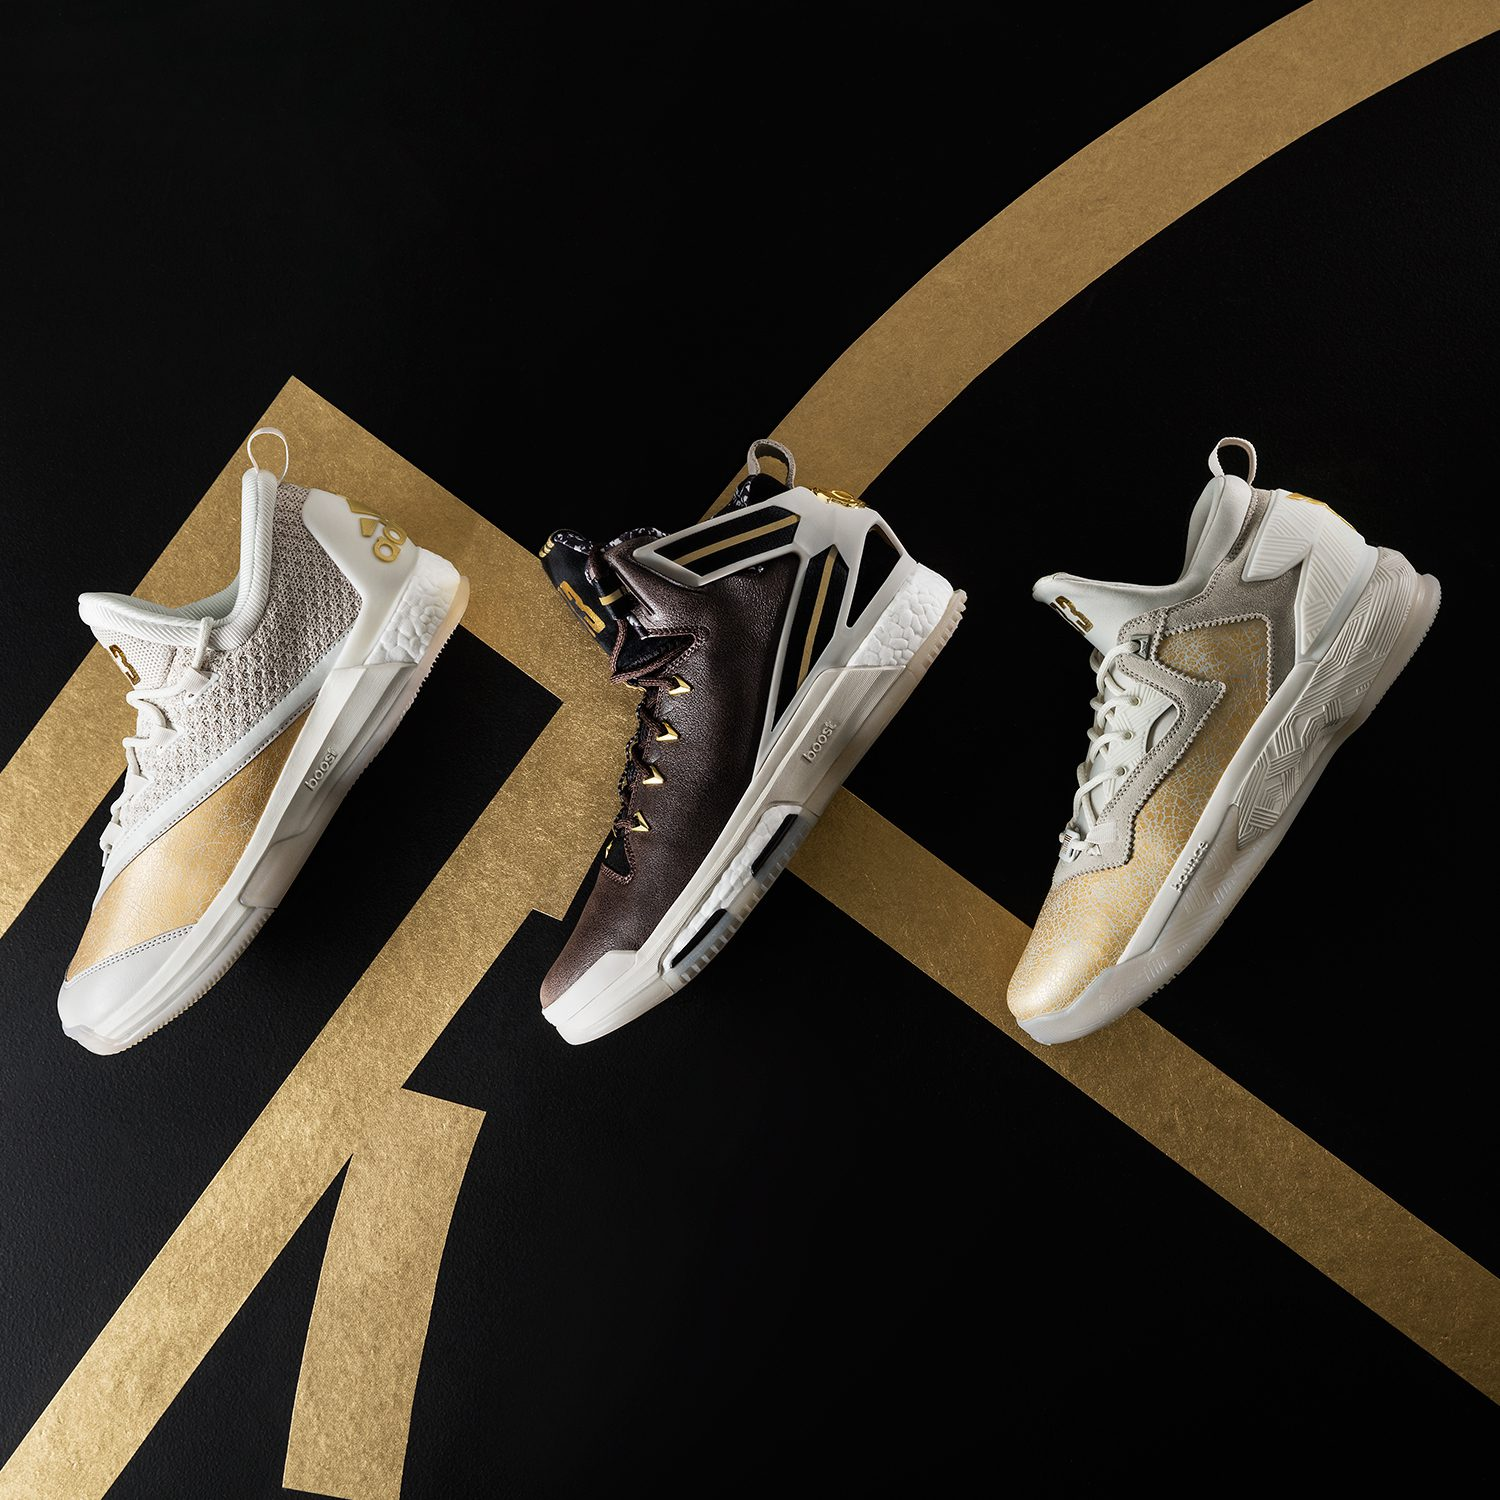 reputable site 45da4 f9e24 adidas Basketball Black History Month x Jesse Owens Collection honors  legends golden glory